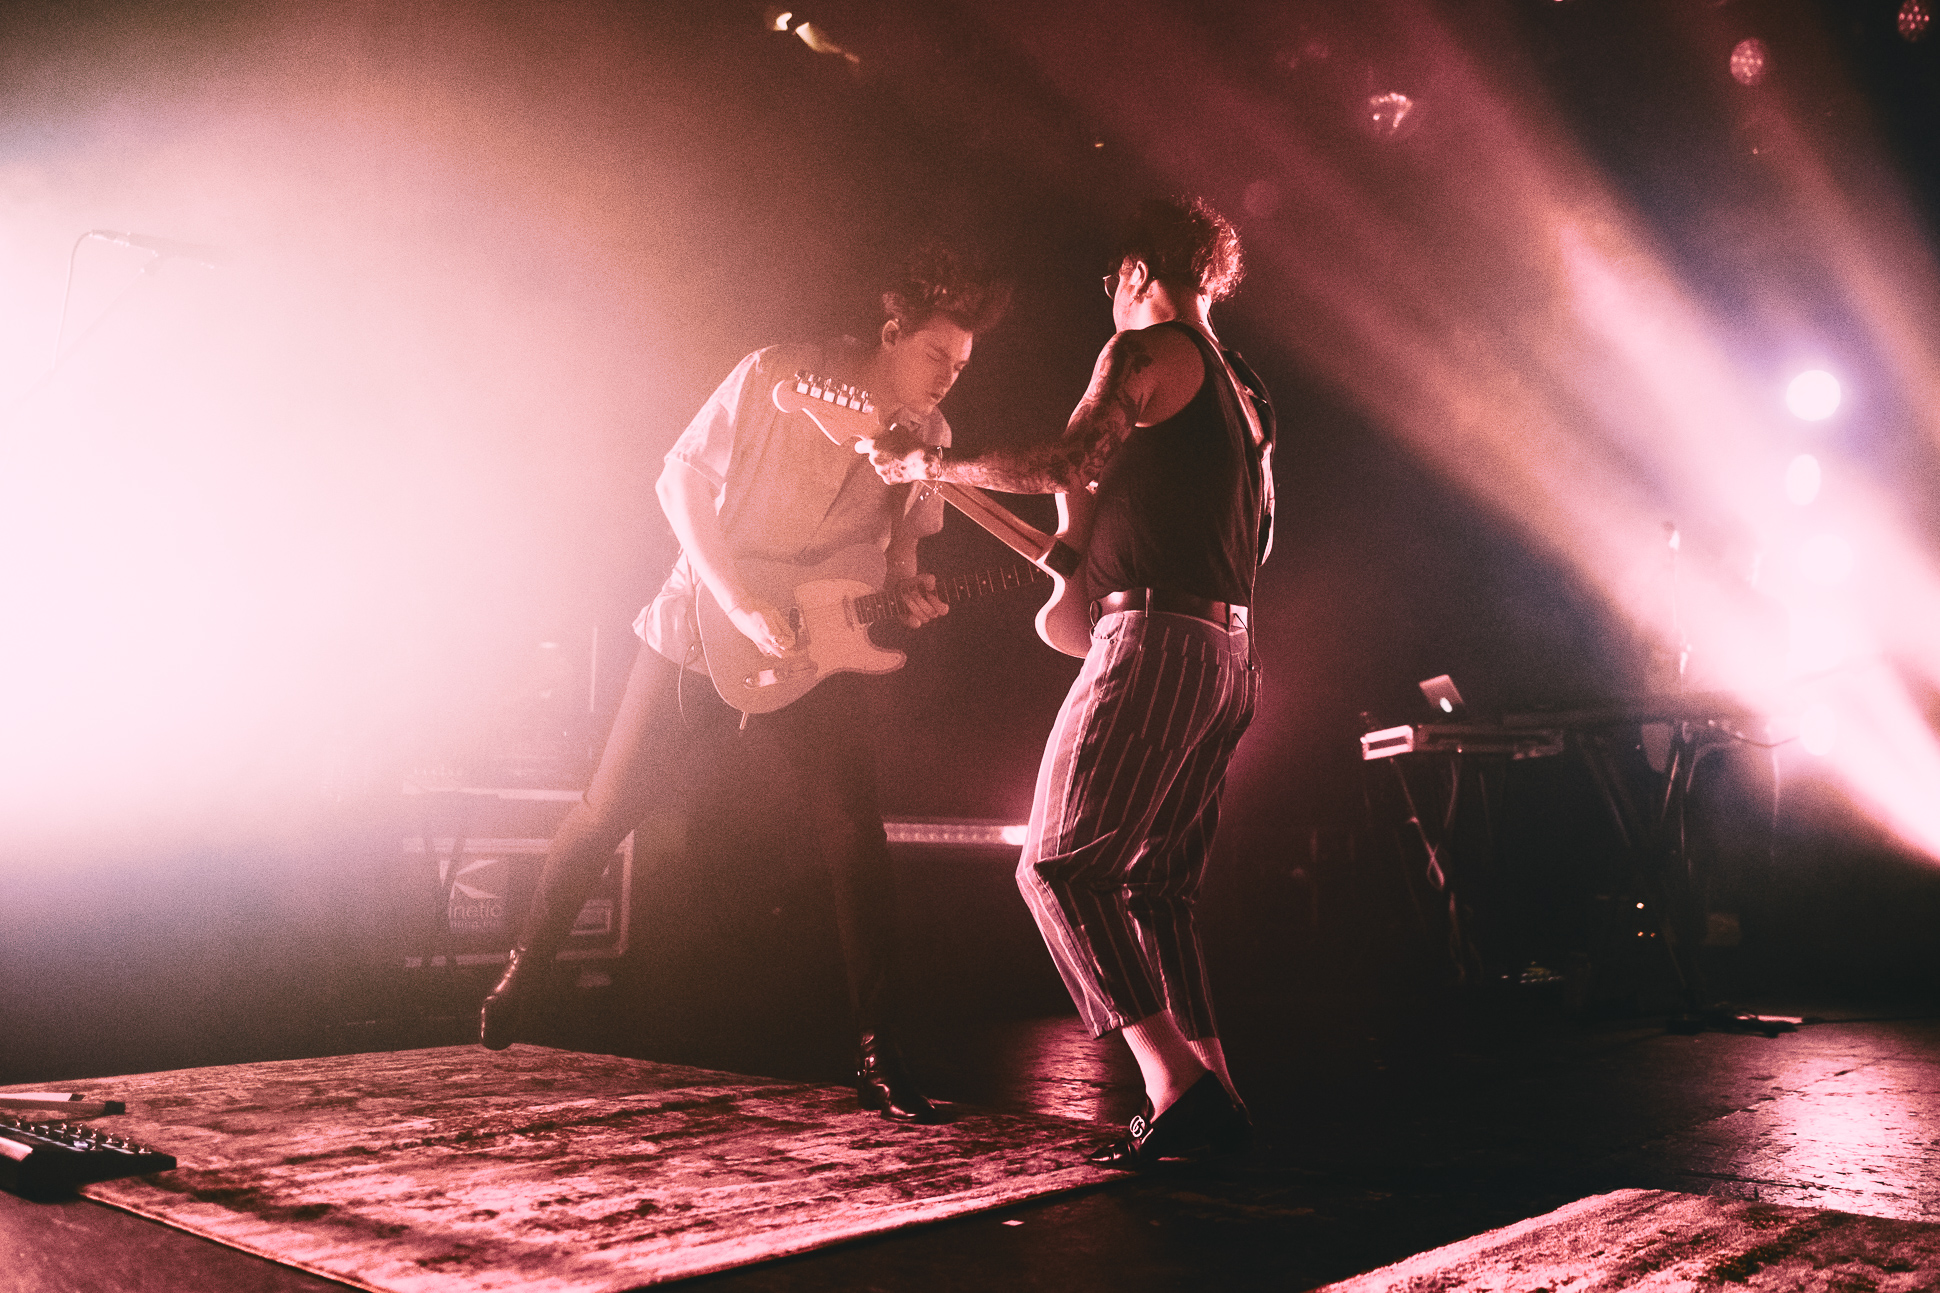 lovelytheband-Commodore-19-04-2019-Vancouver-4141.jpg